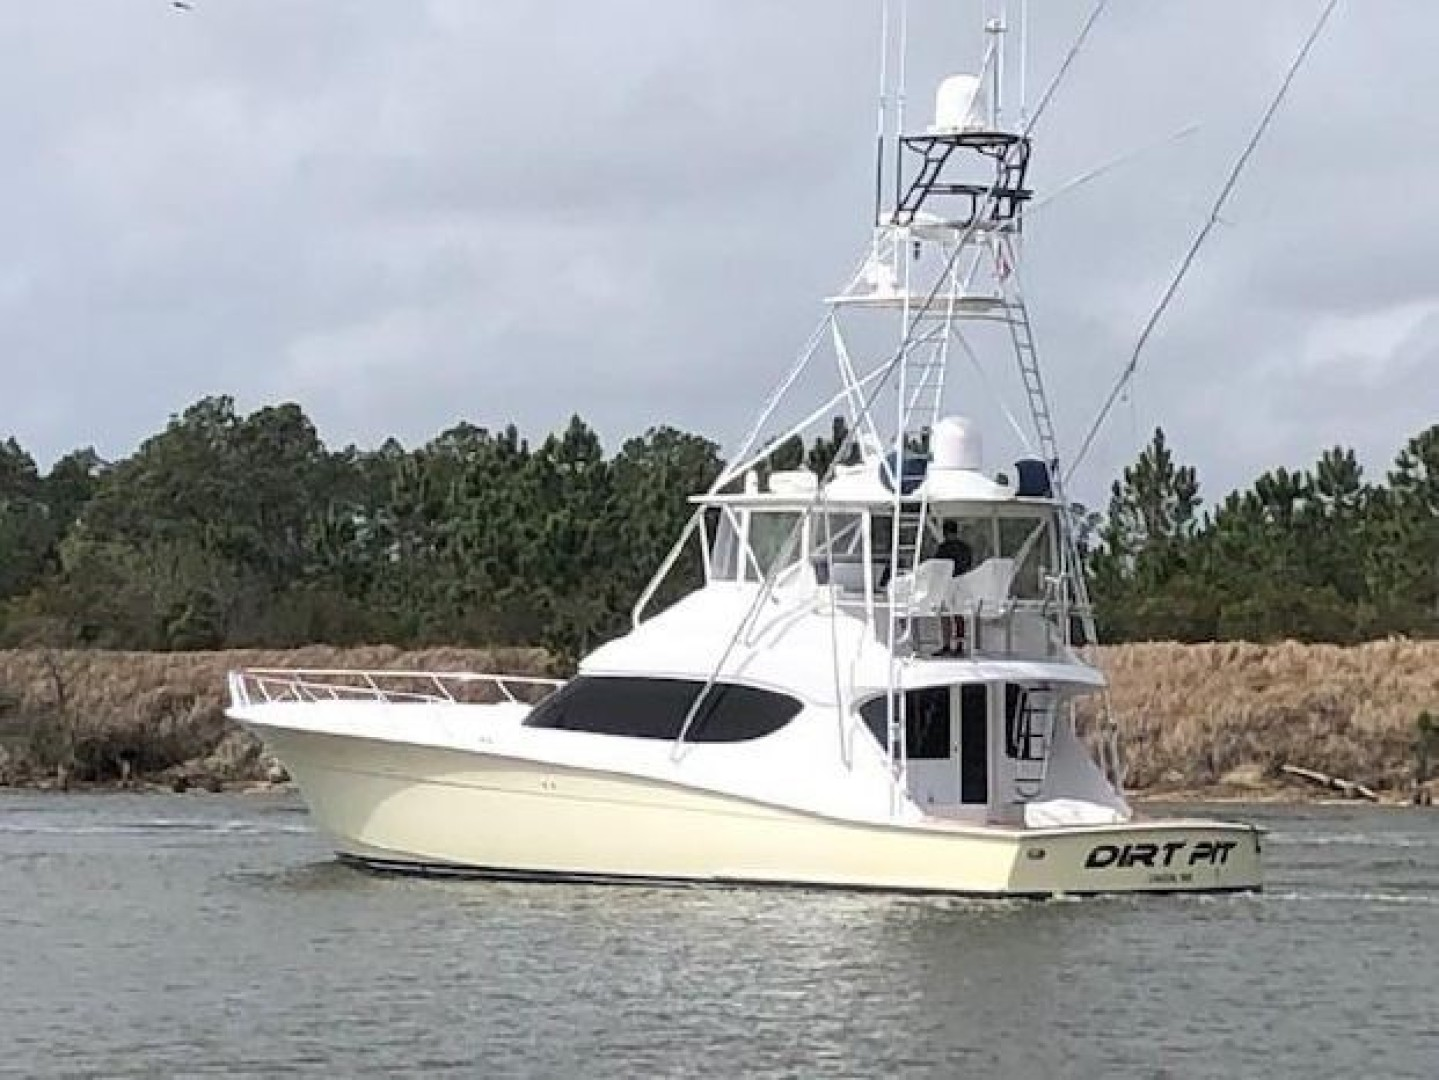 Hatteras-60 Convertible 2009-Dirt Pit United States-1604876 | Thumbnail